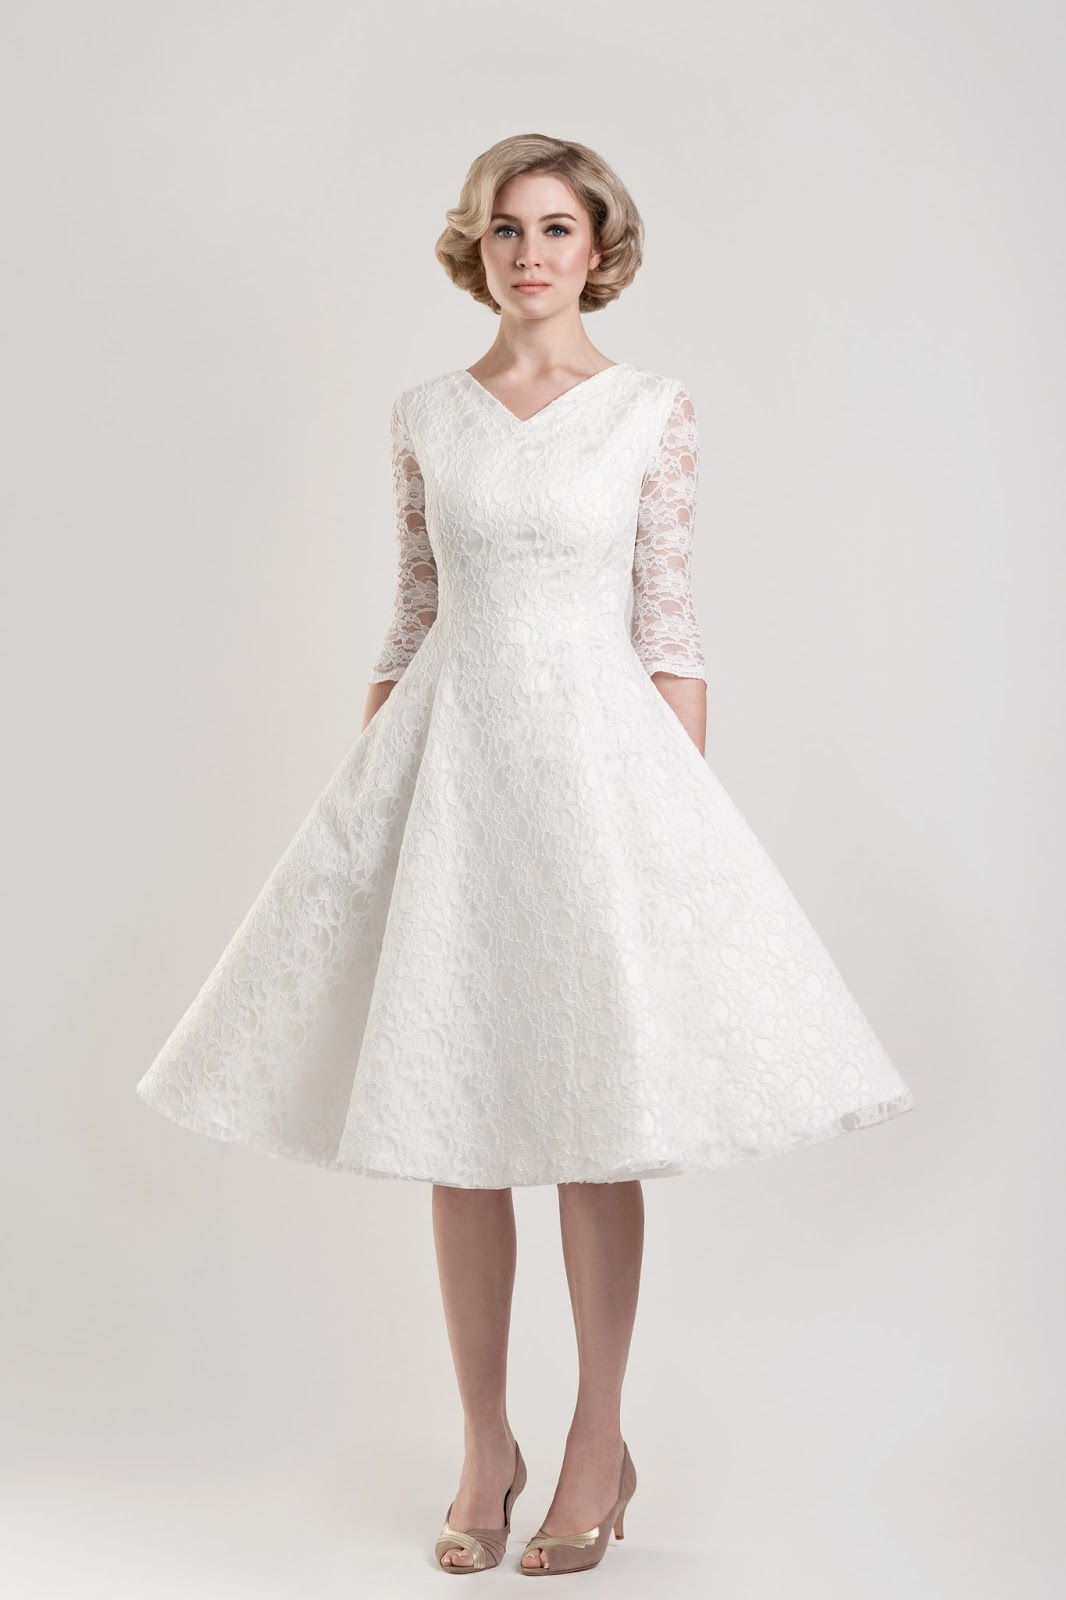 Short wedding dresses for older brides for Wedding dress for a short bride